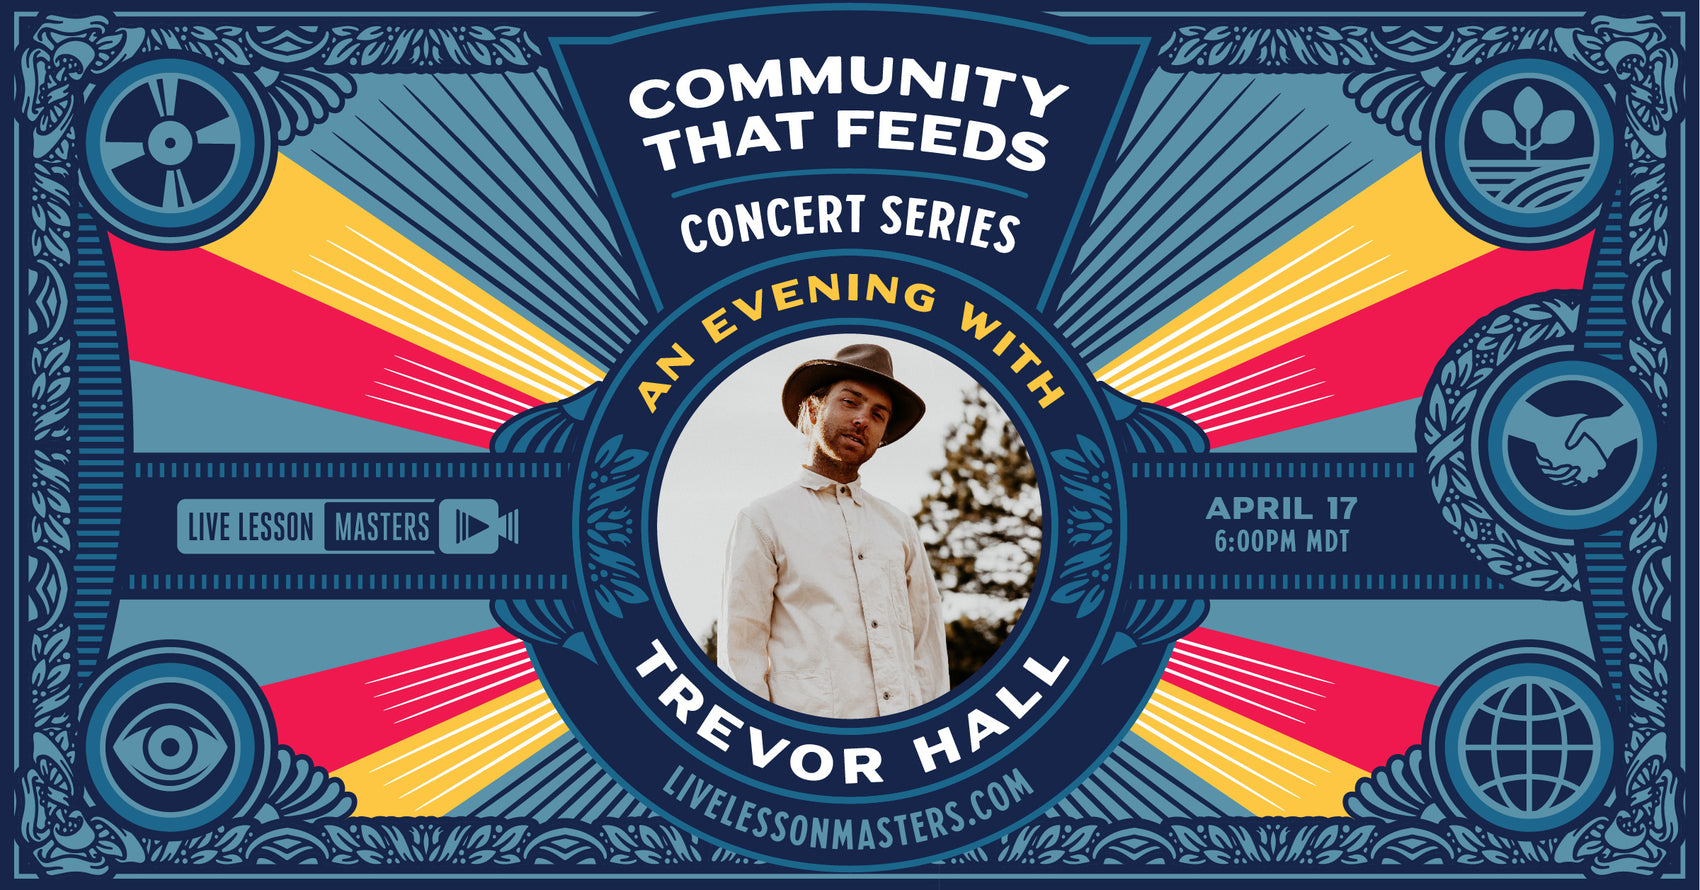 Community That Feeds Concert Series: Trevor Hall